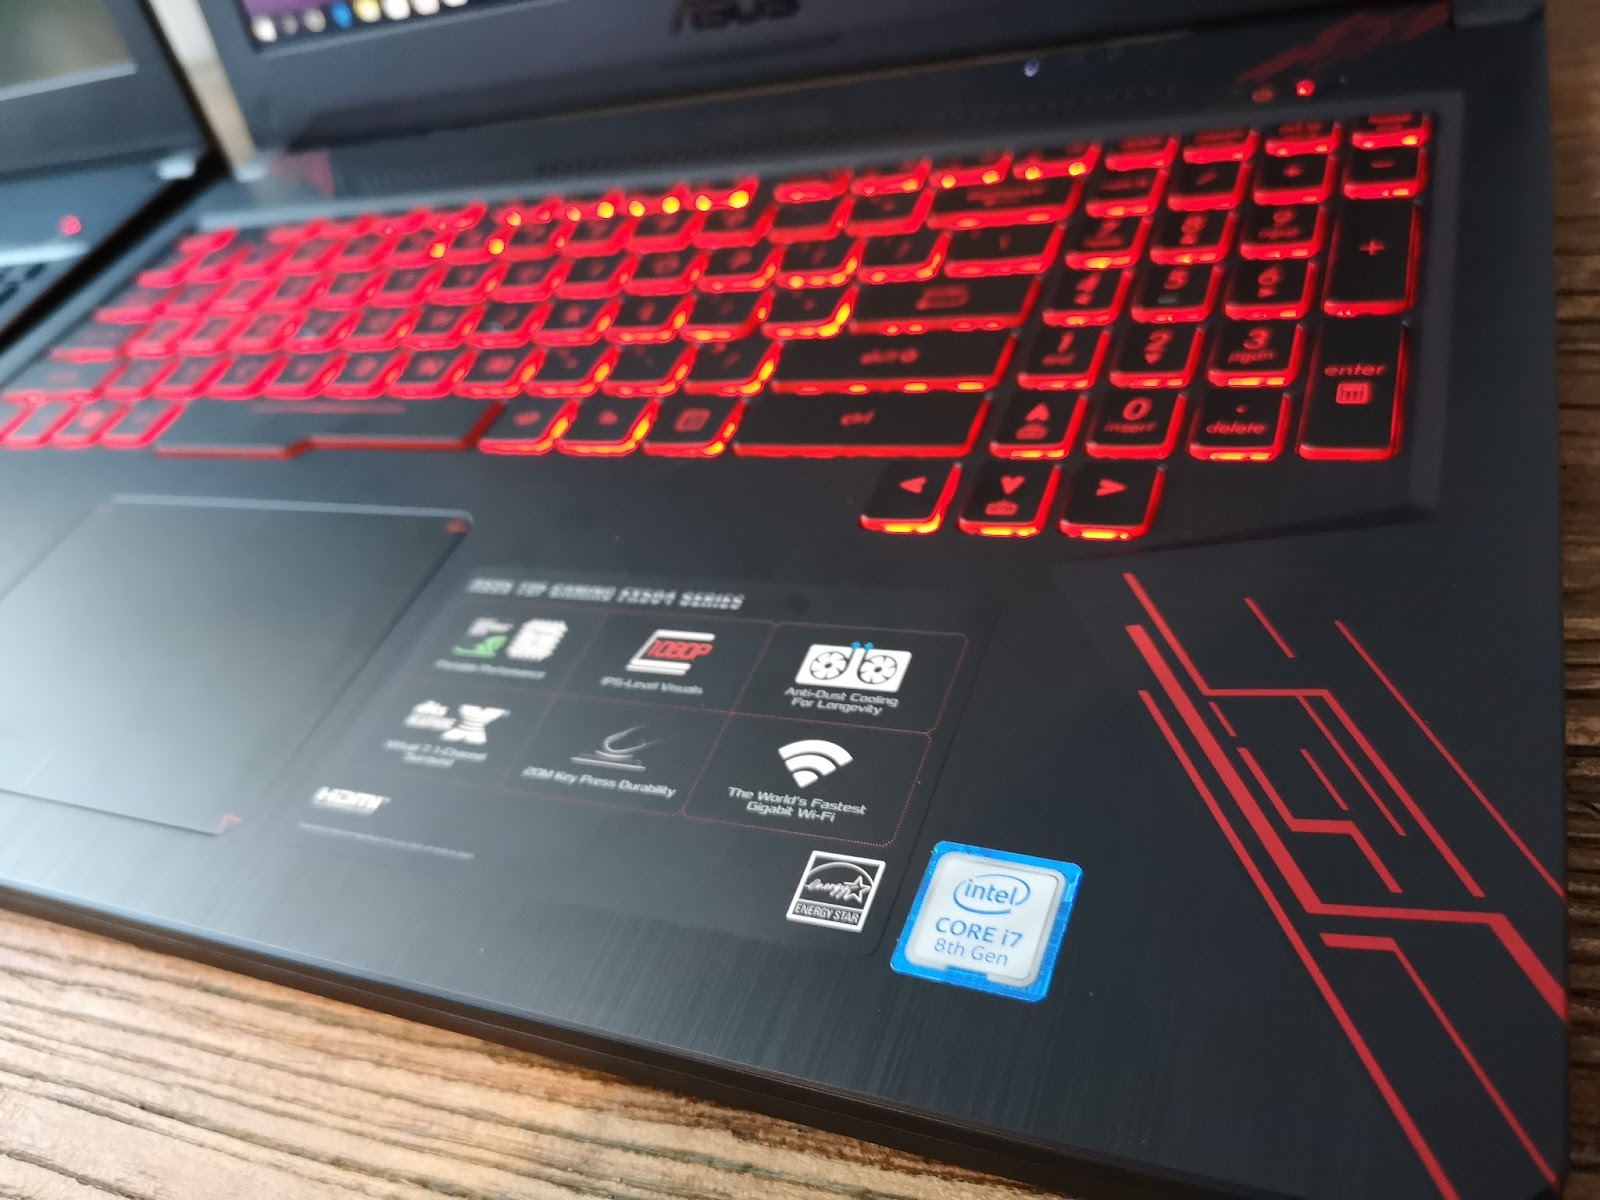 An affordable Gaming Laptop for All? - Here's what the ASUS TUF